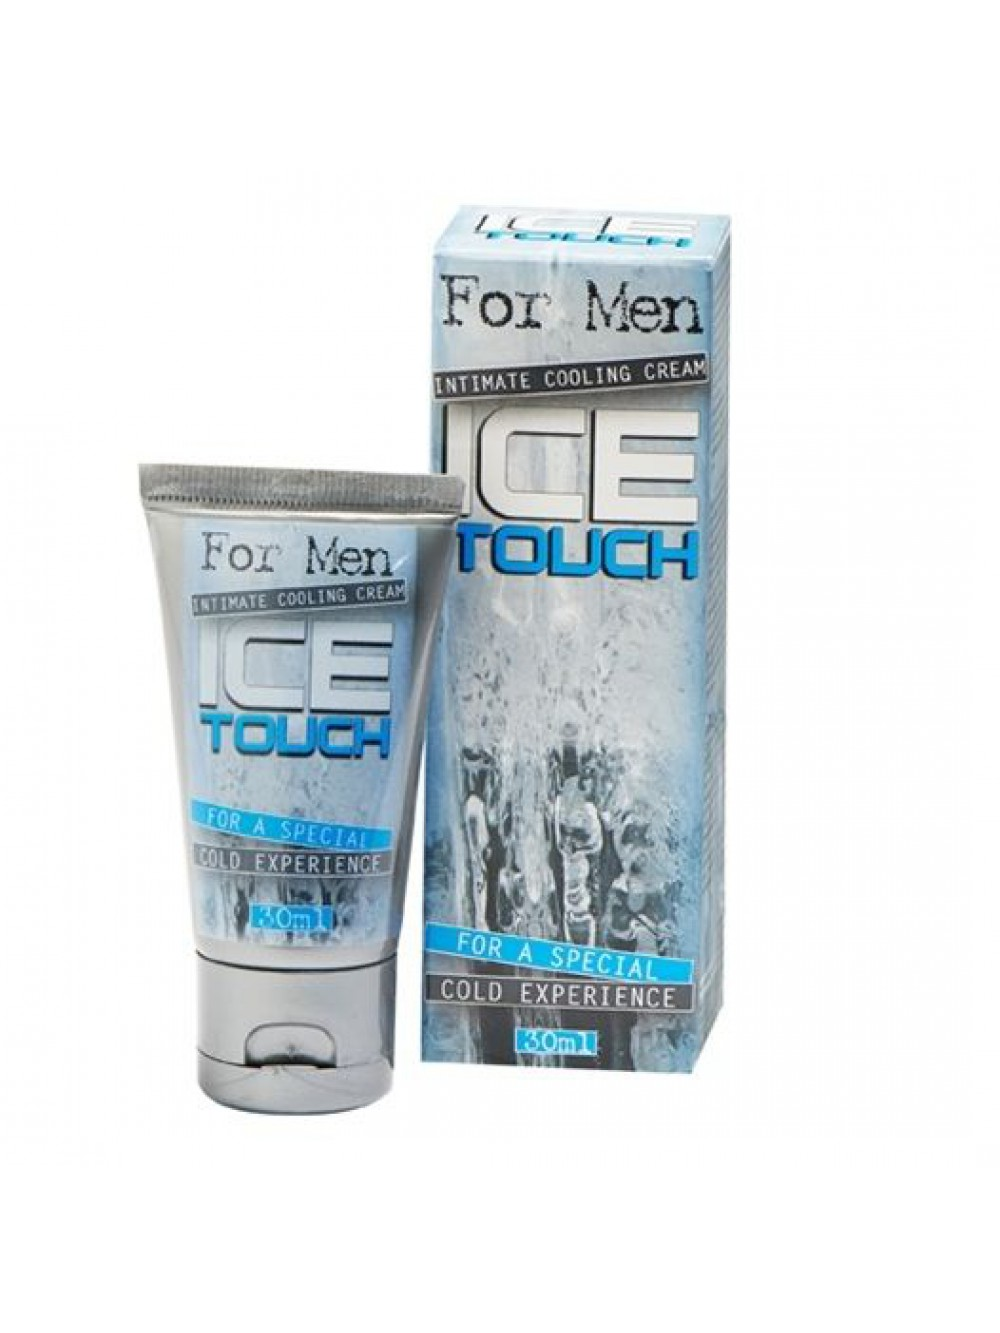 ICE TOUCH INTIMATE COOLING CREAM FOR MEN